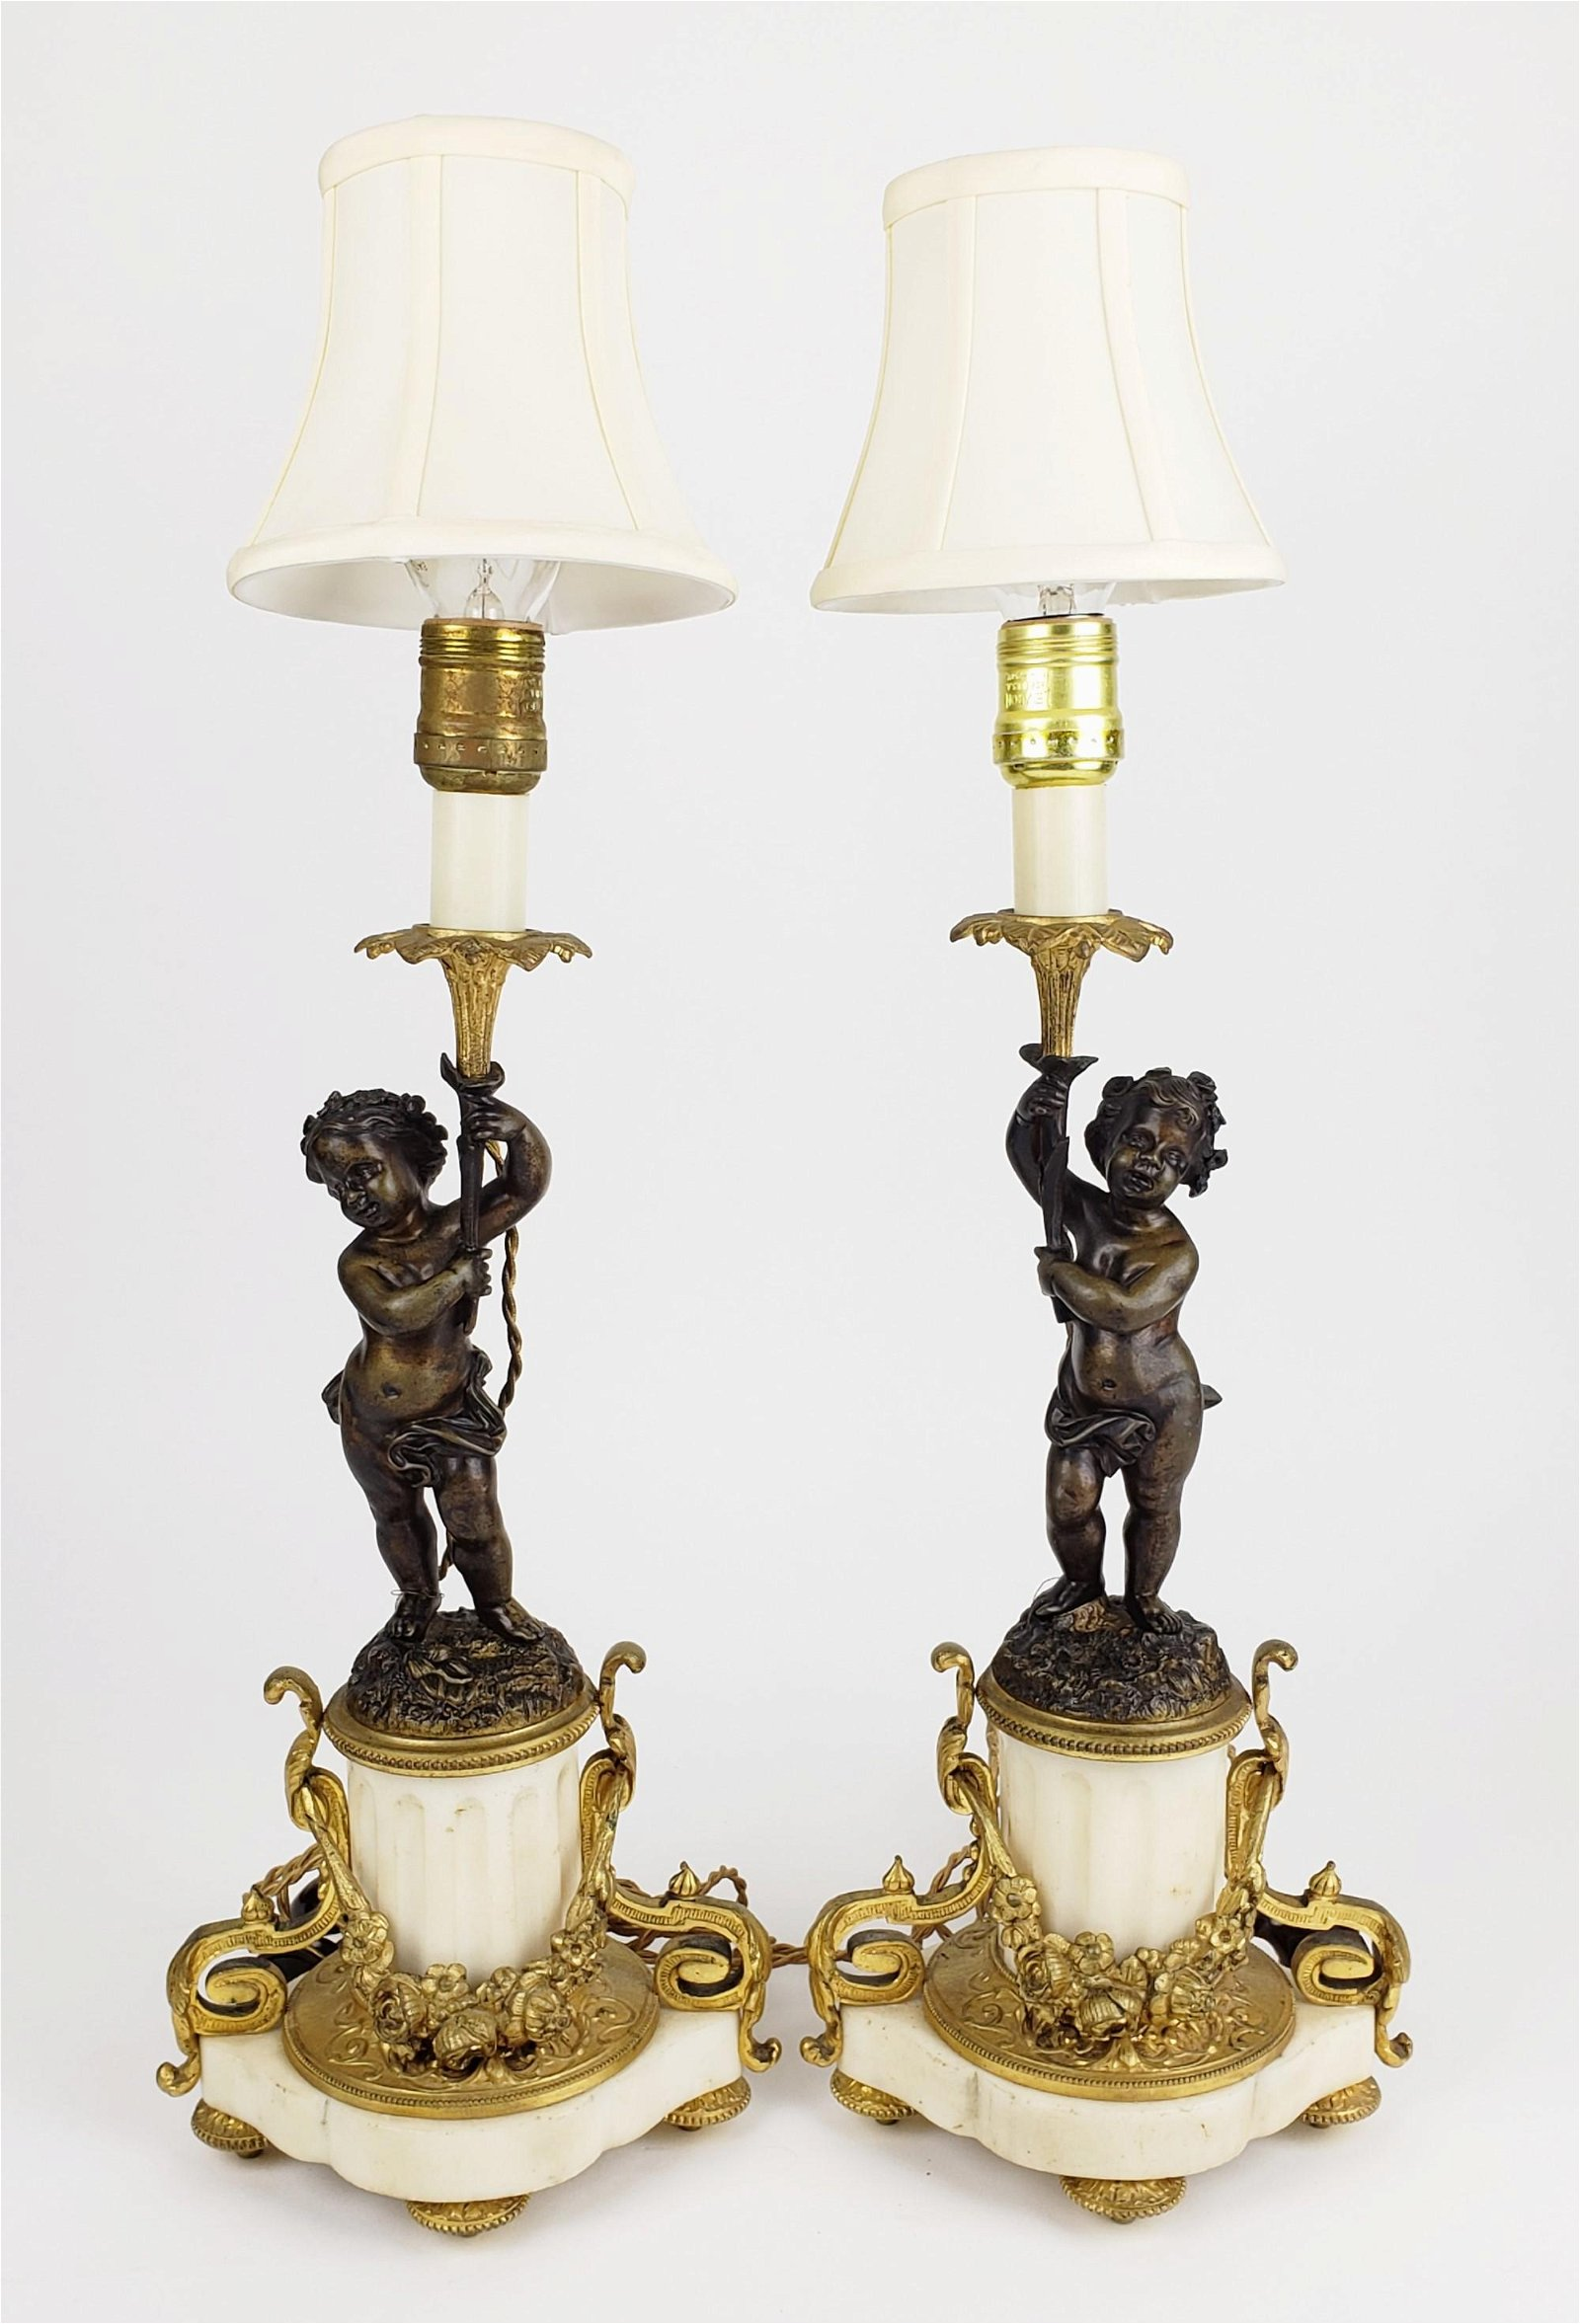 Magnificent Pair of 19th C. French Bronze & Marble